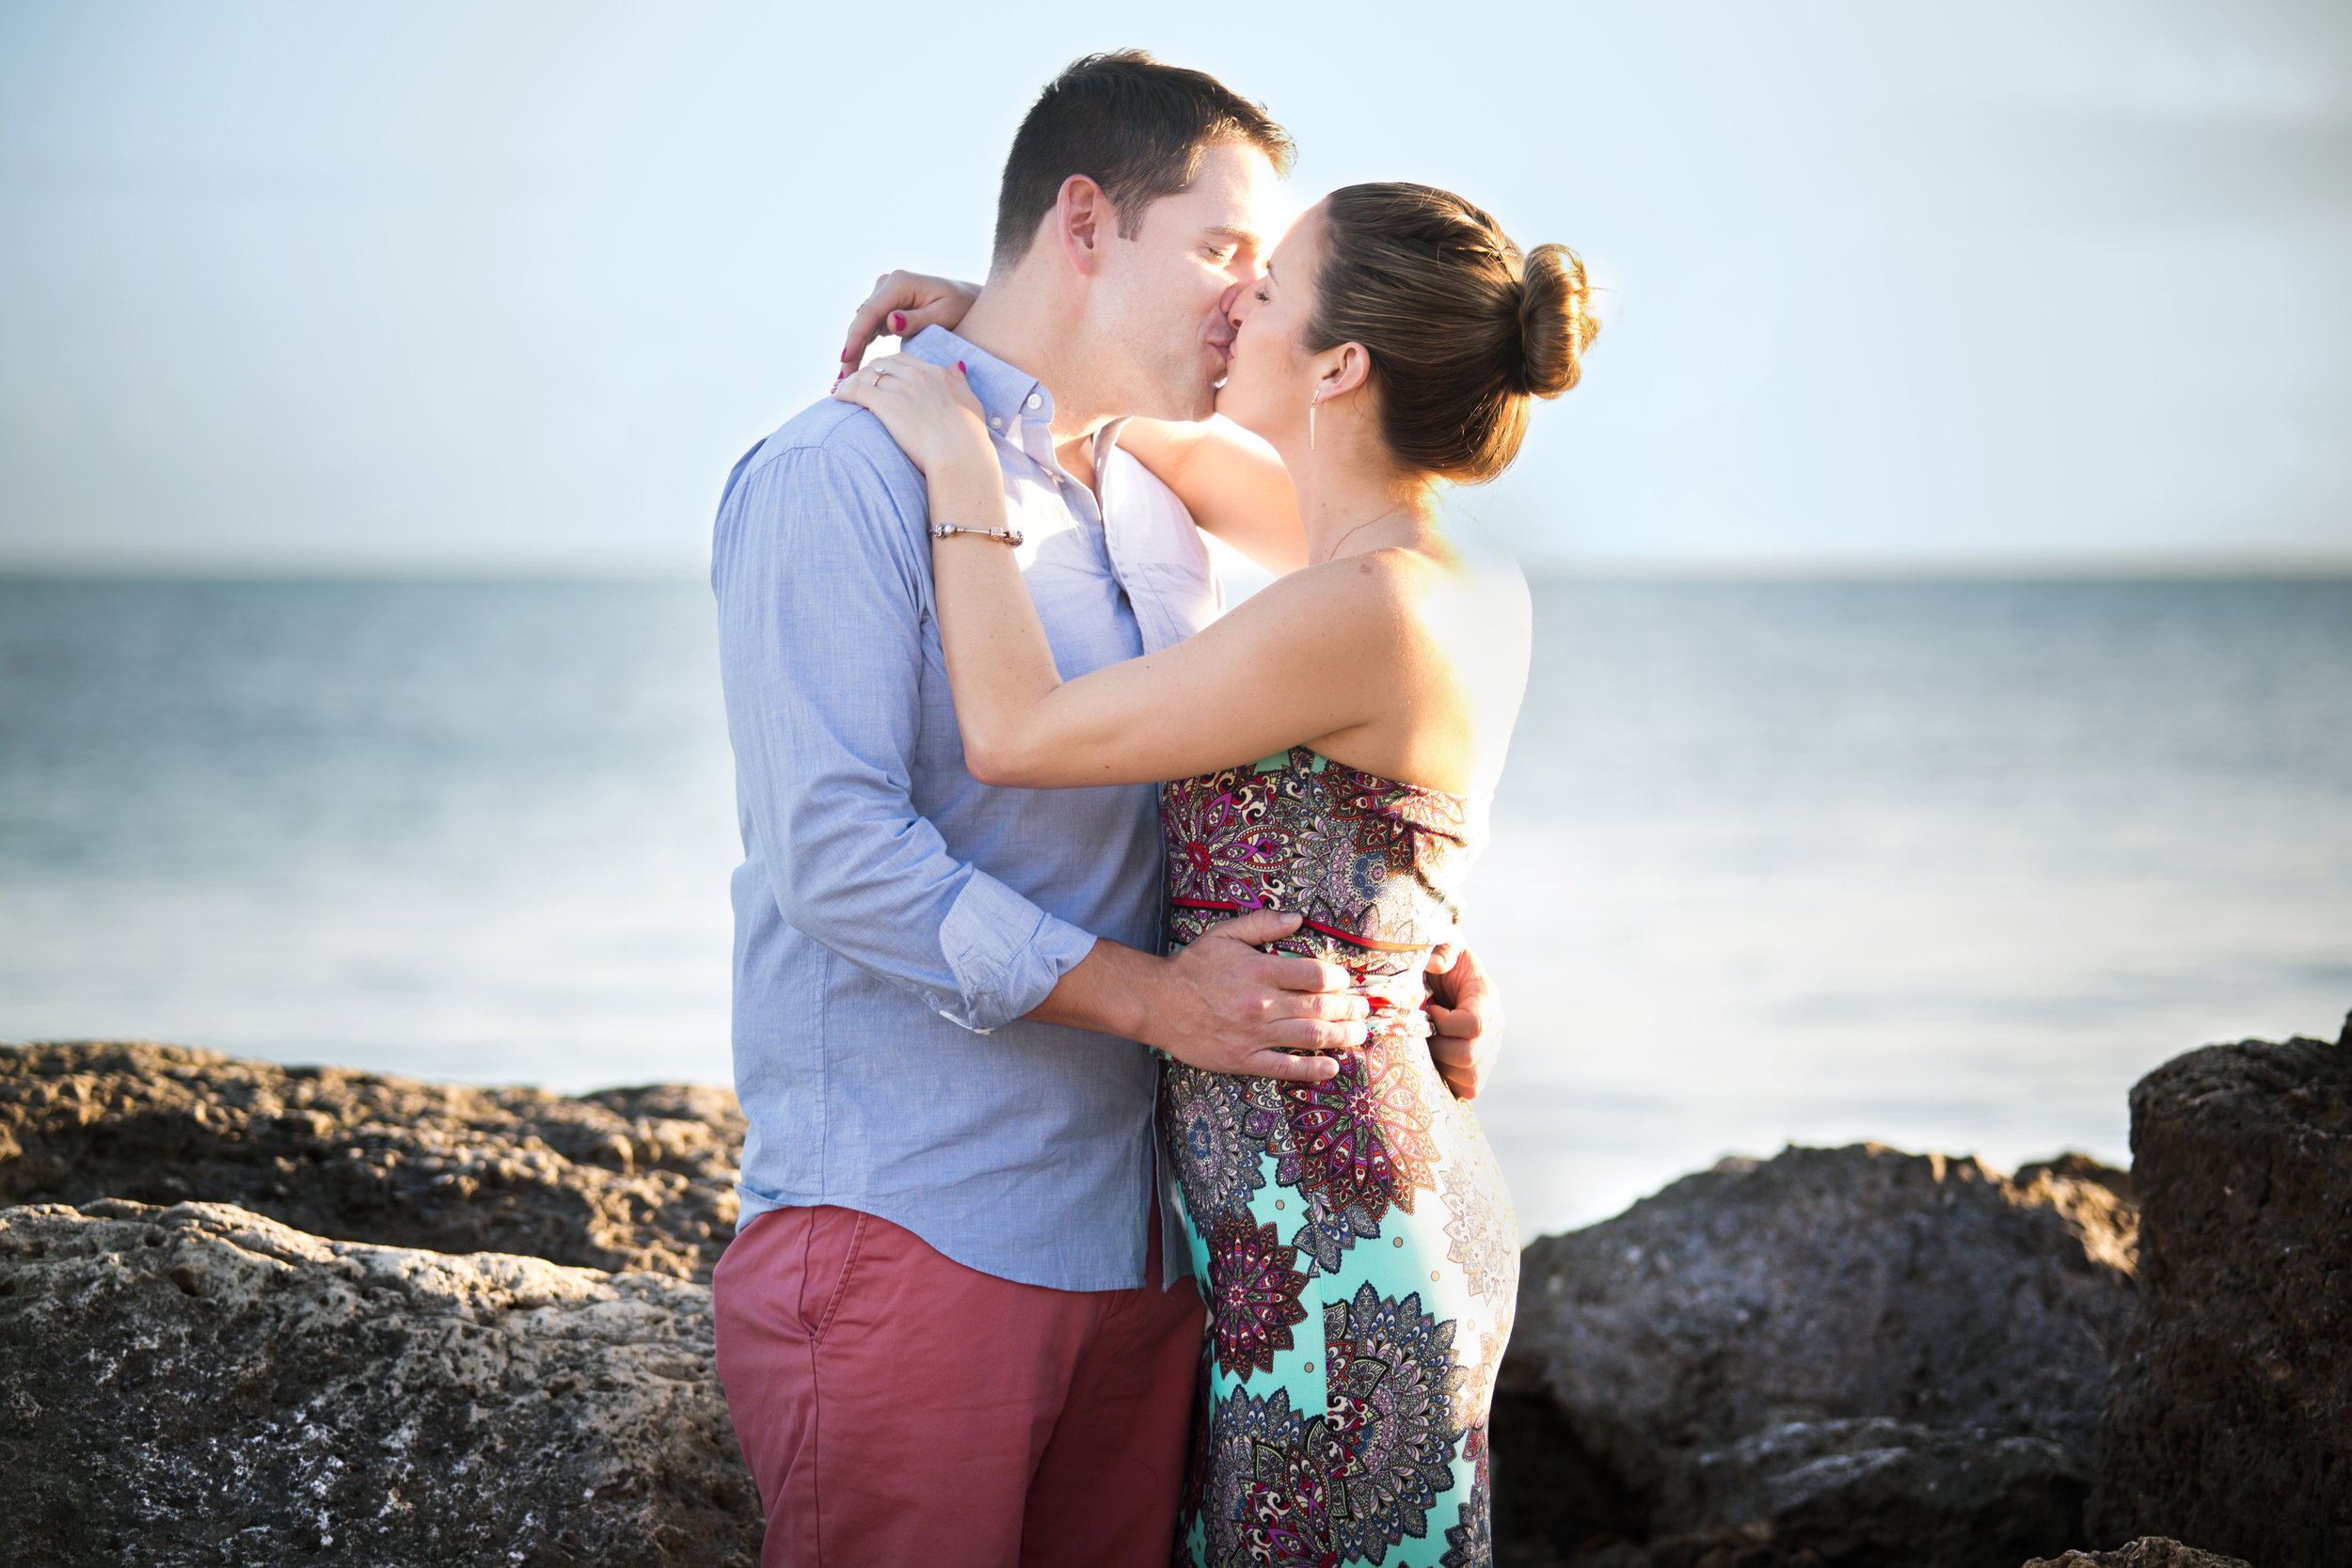 A kiss by the beach captured after the engagement